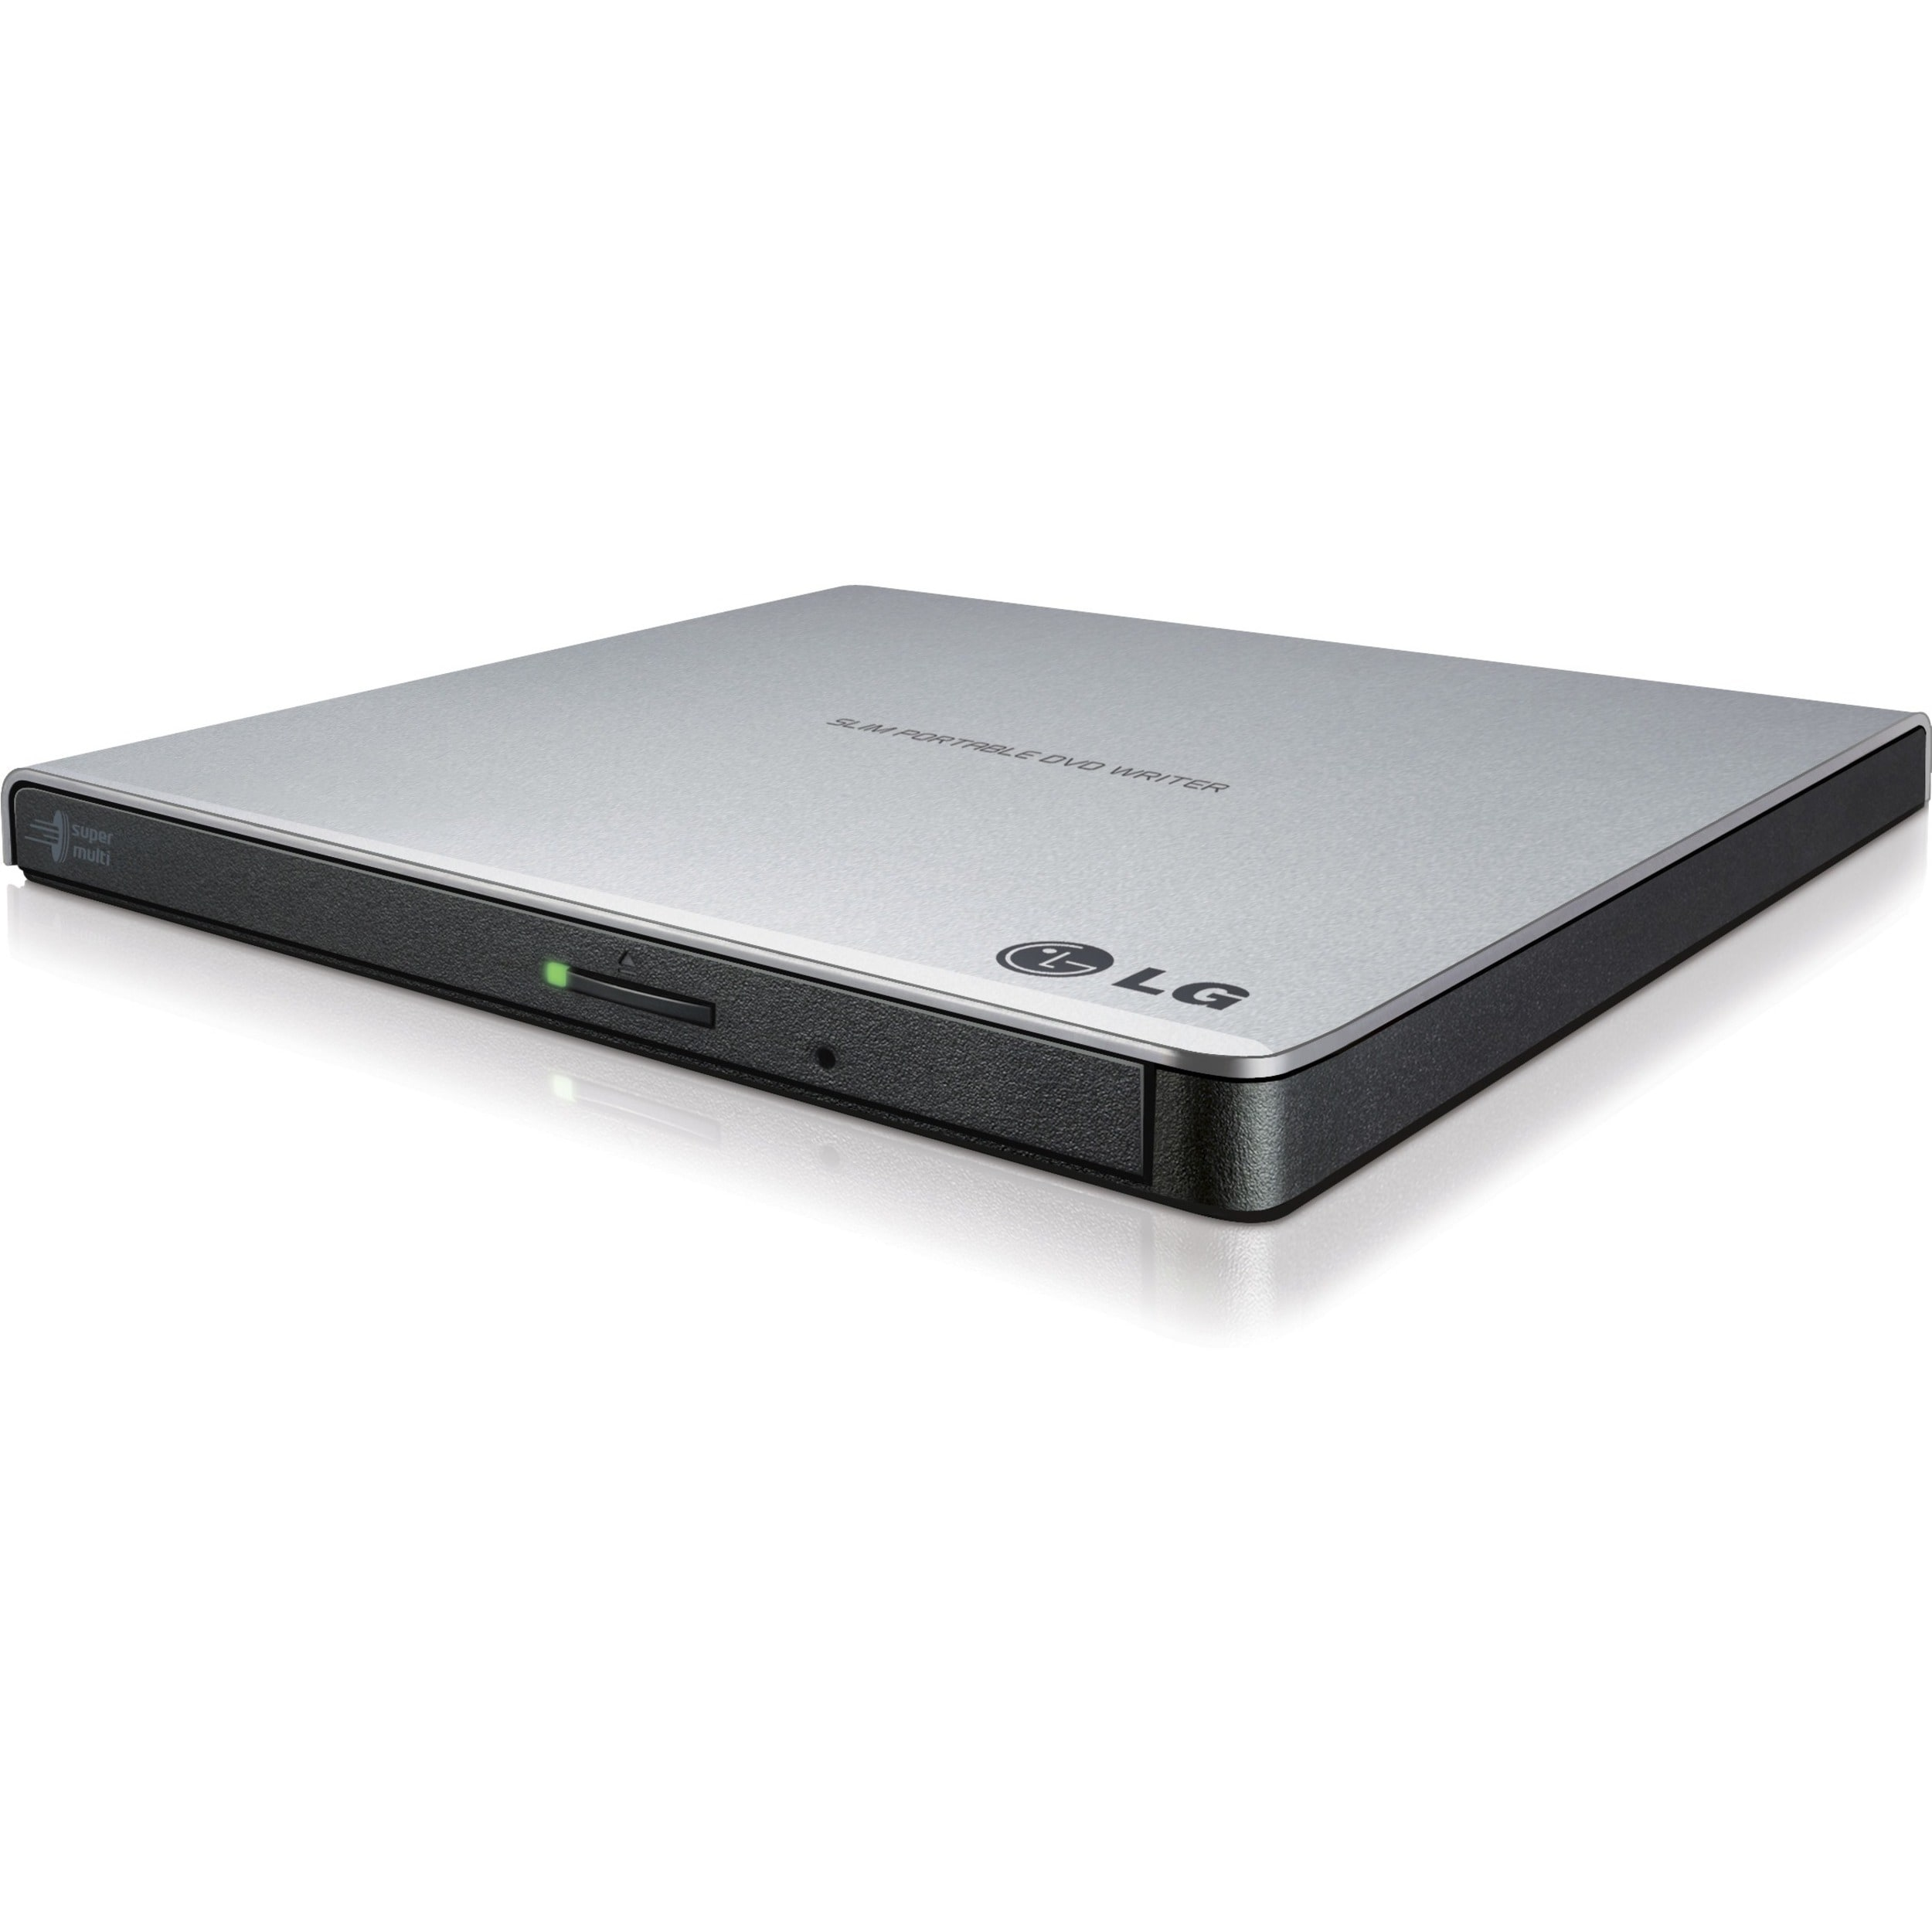 LG GP65NS60 DVD-Writer - 1 x Retail Pack - Silver